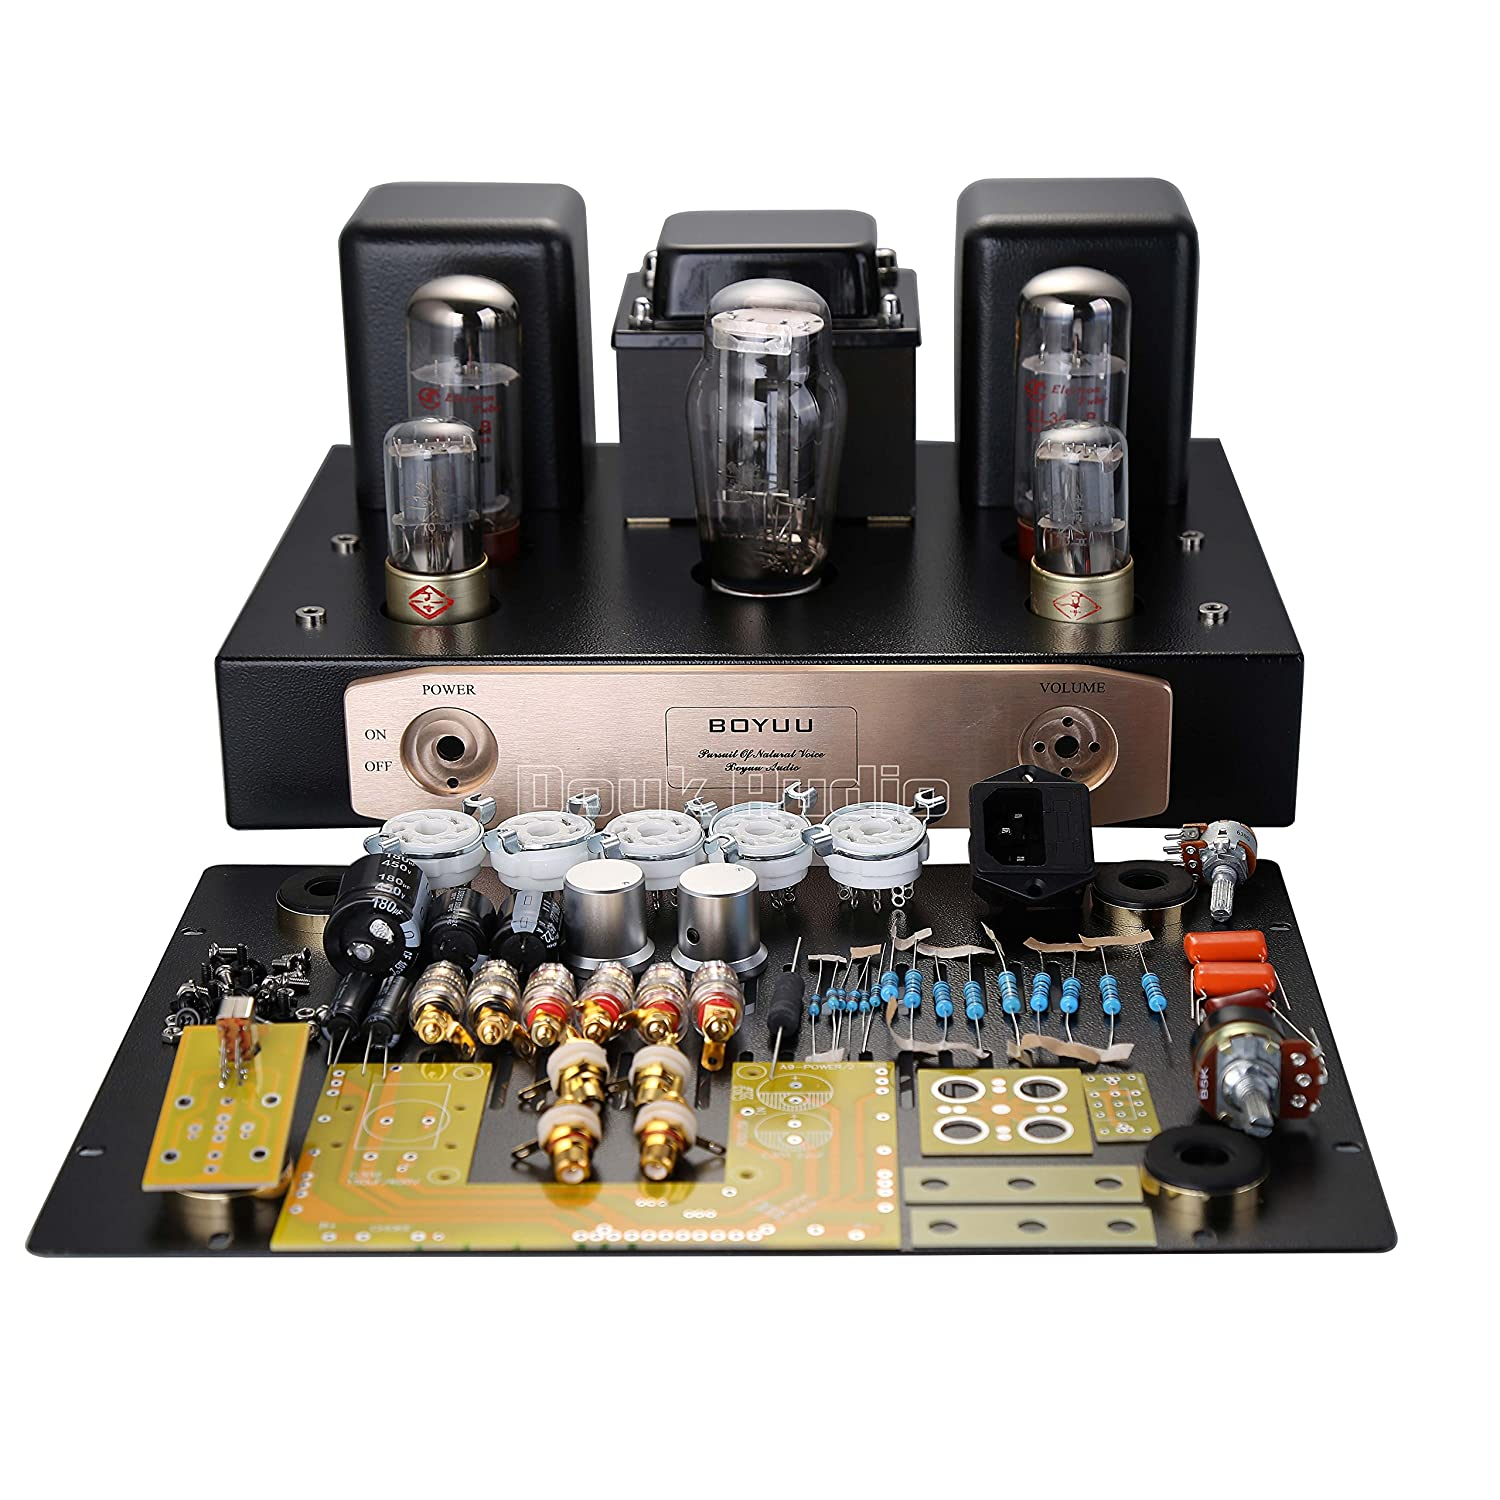 Nobsound El34 Pure Vacuum Tube Amplifier Single Ended Watt Audio Power Circuit Schematic Class A Hifi Stereo Amp 12w Diy Kit Home Theater